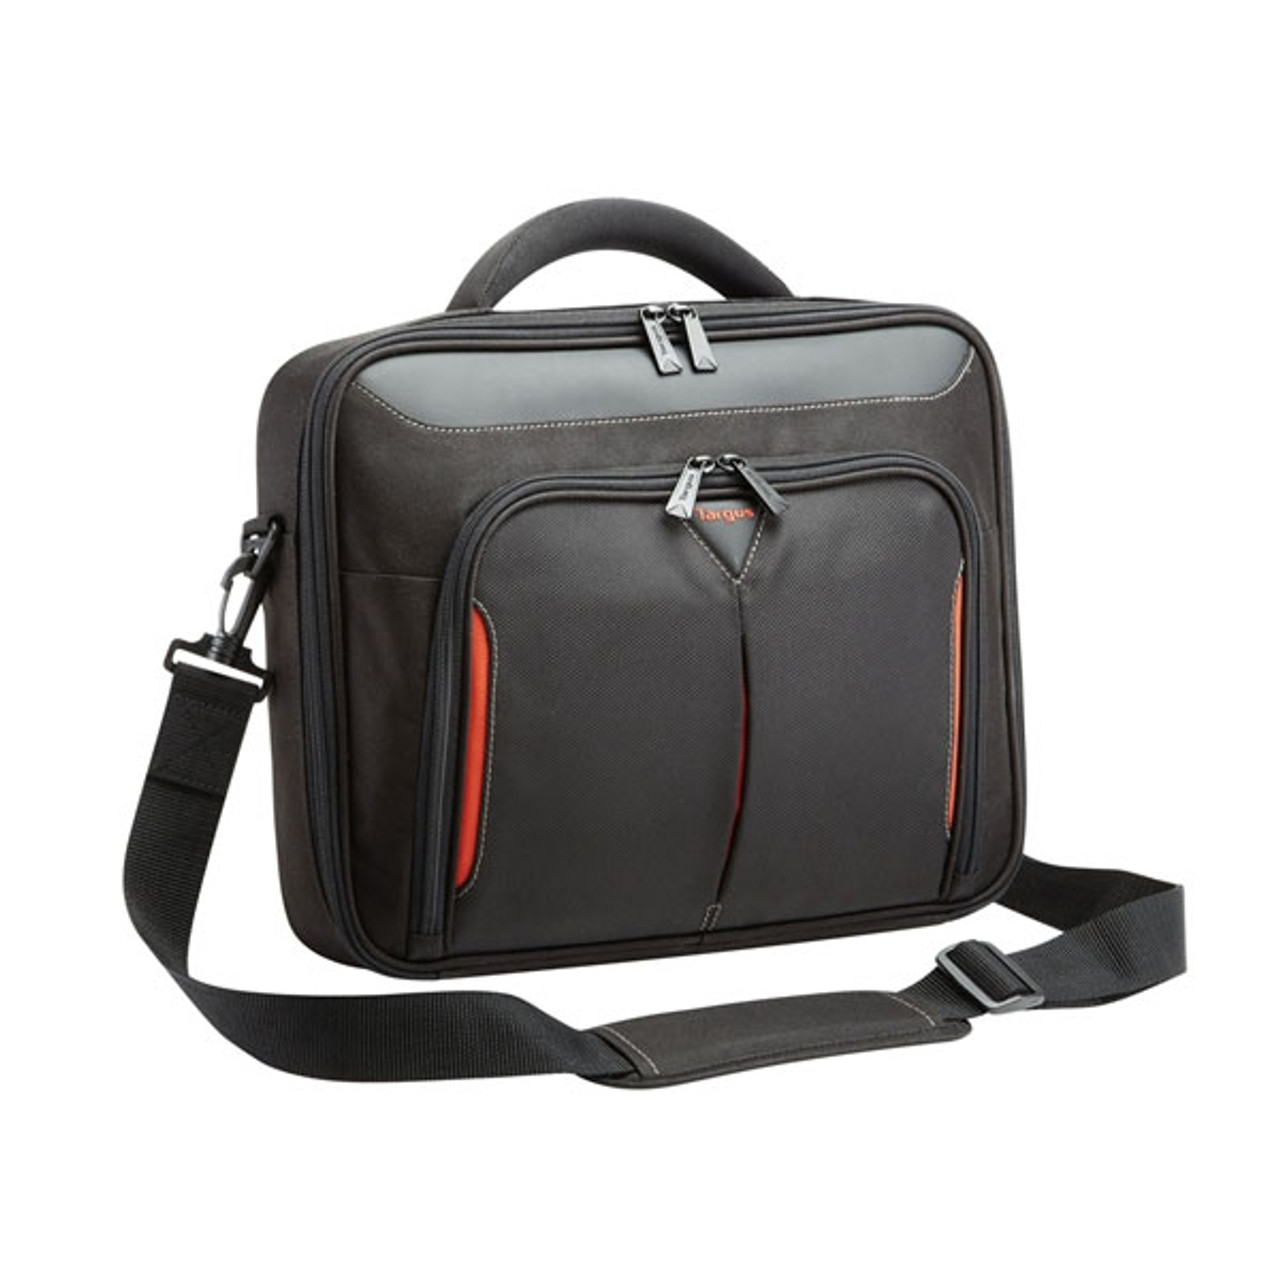 Image for Targus 18in Classic+ Clamshell Laptop Bag with File Compartment (CNFS418AU) CX Computer Superstore